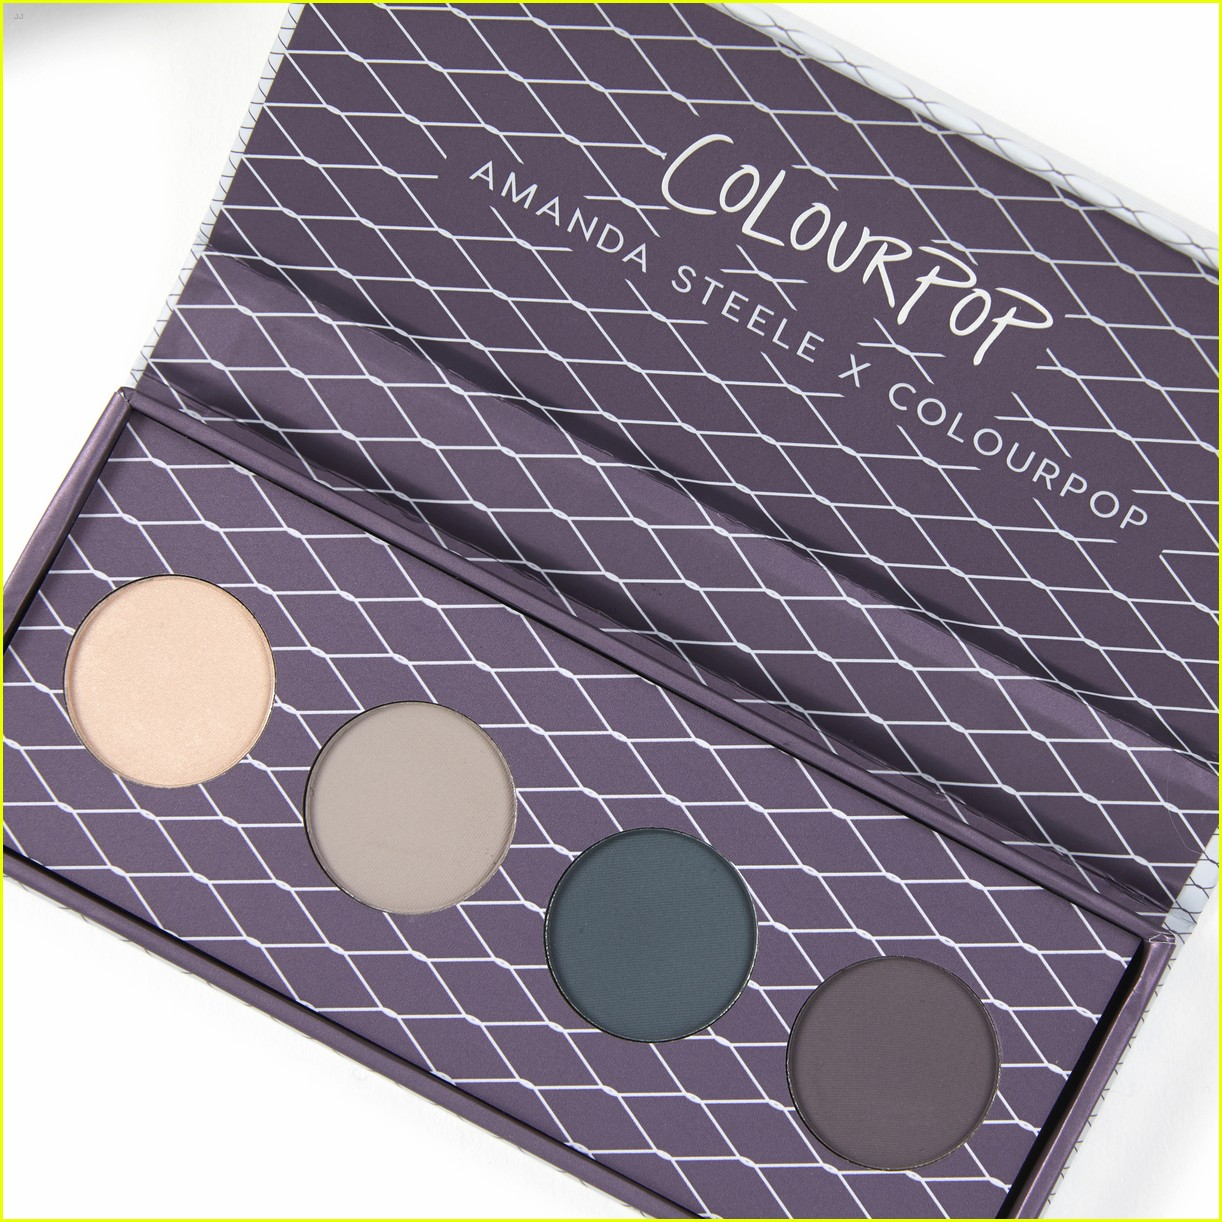 amanda steele collabs colourpop cosmetics collection 08